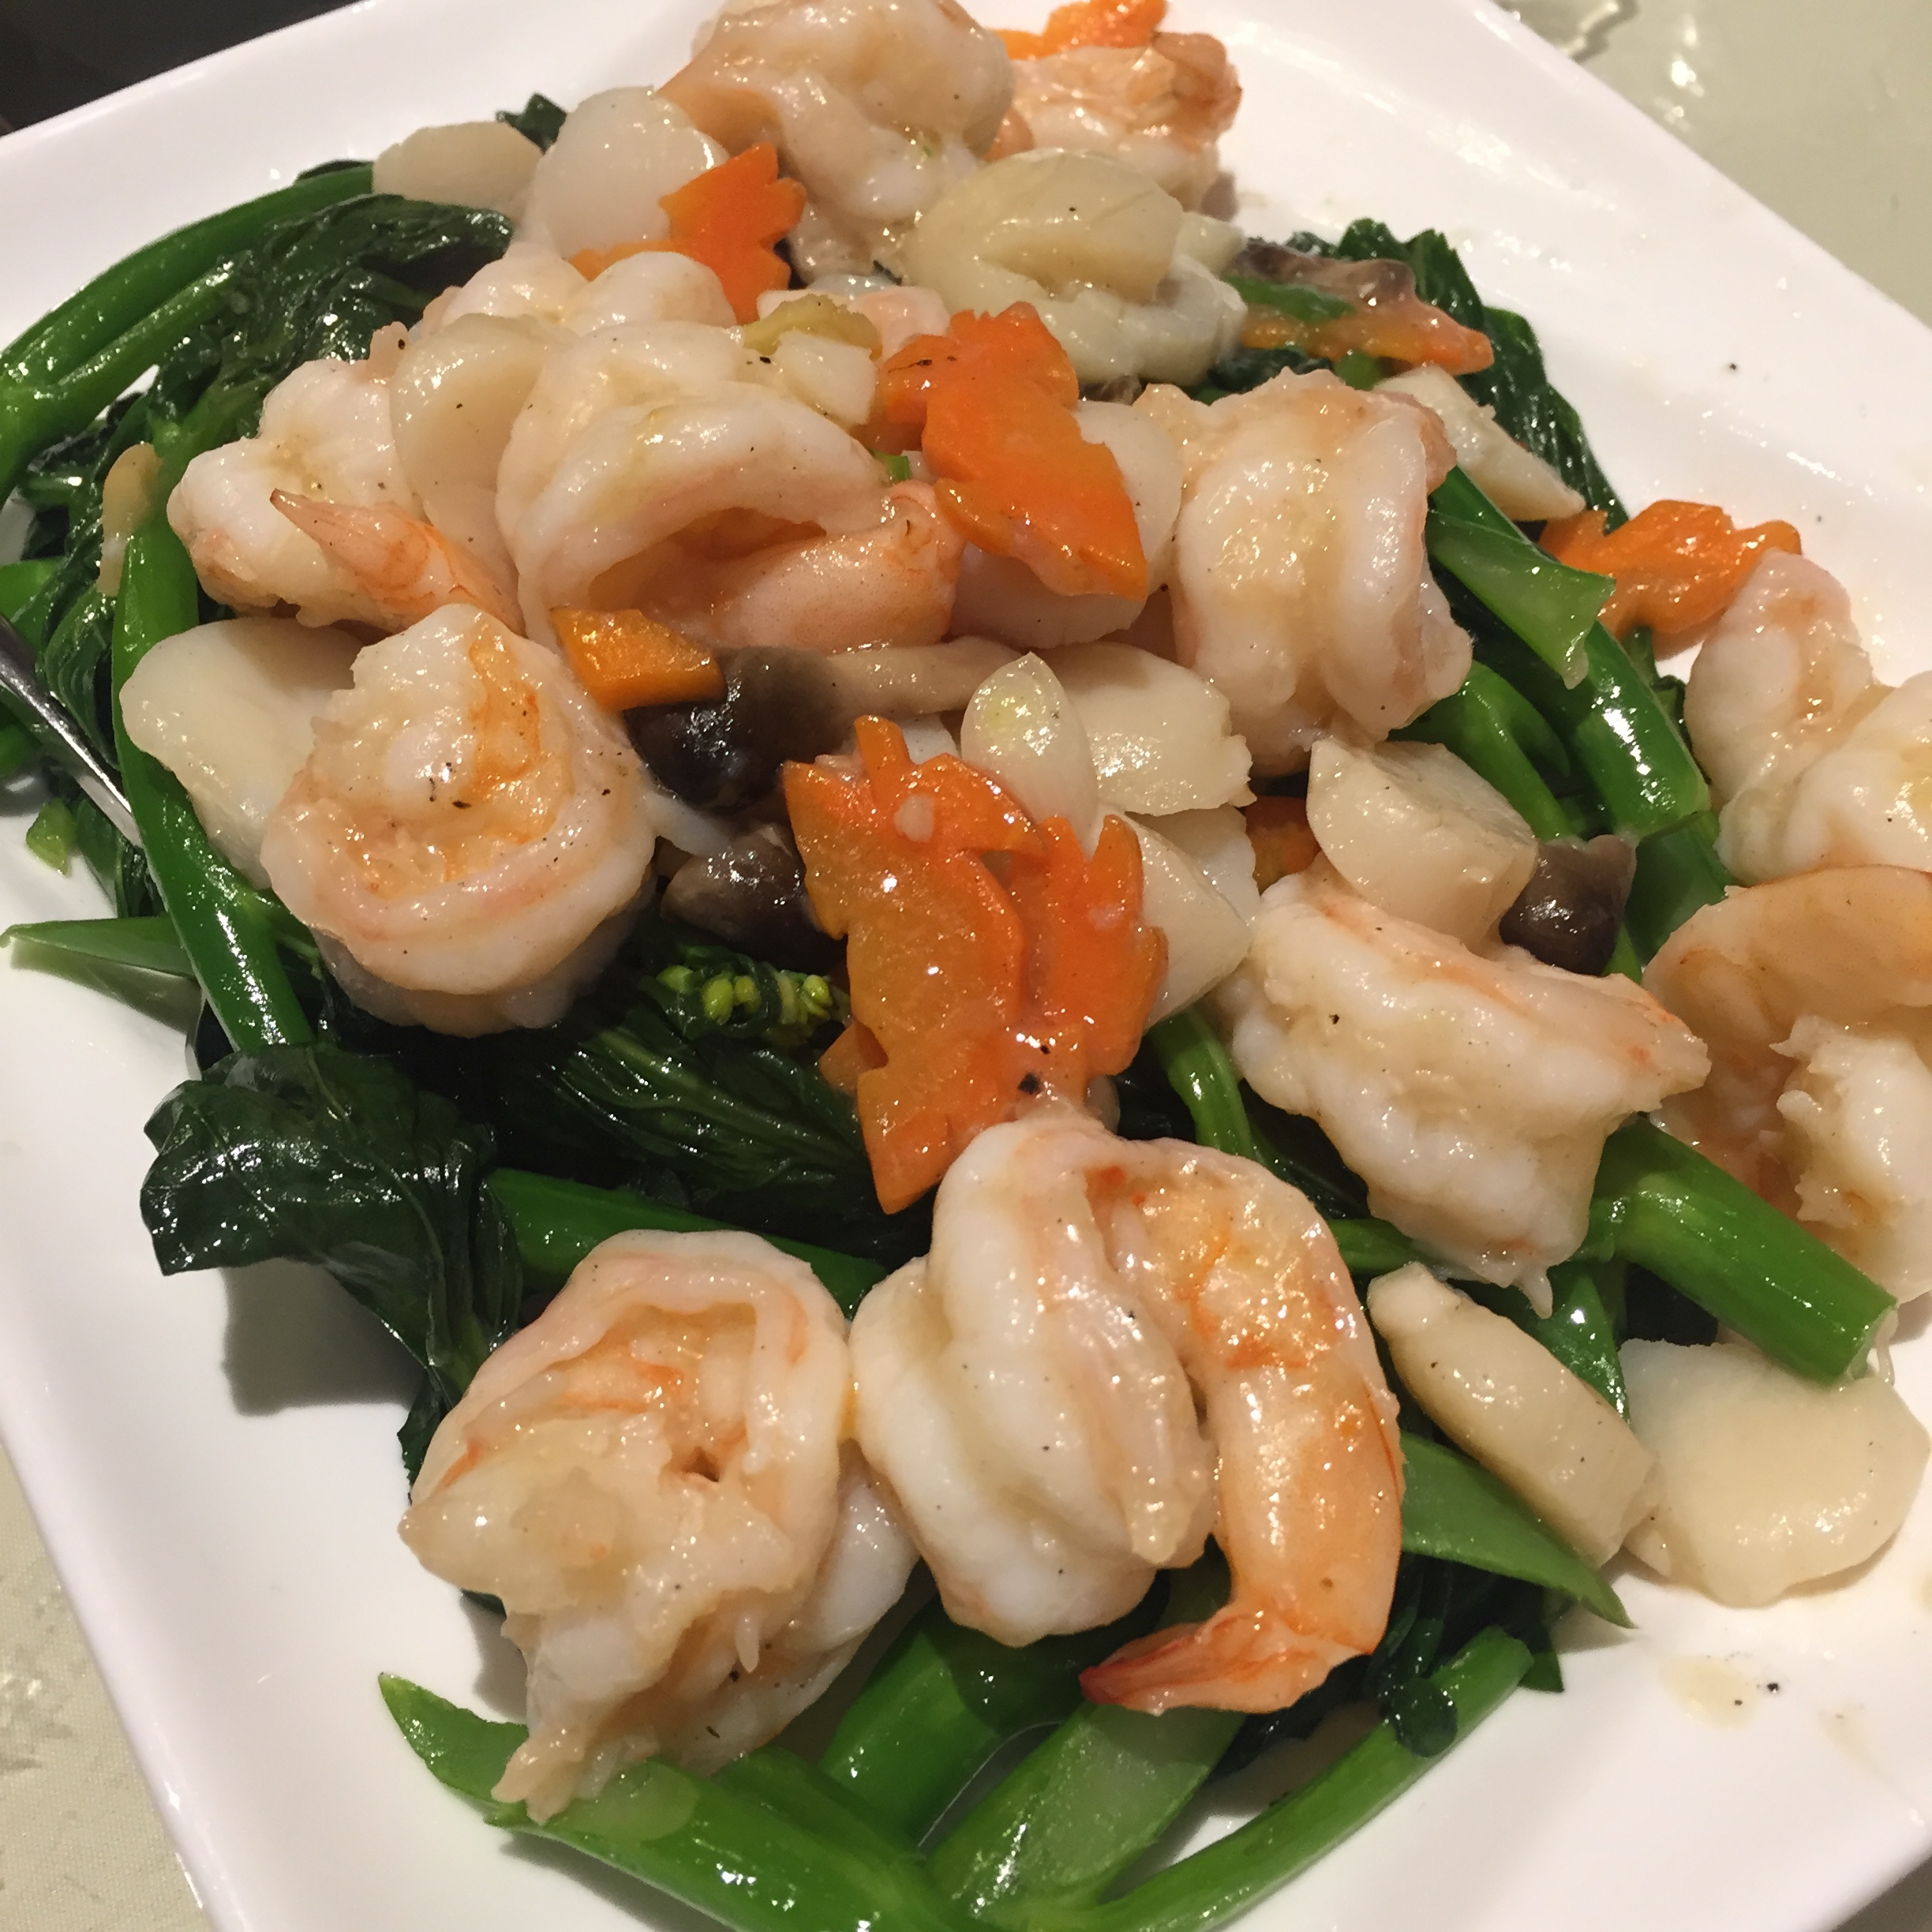 Shrimp and Scallops with Chinese Greens